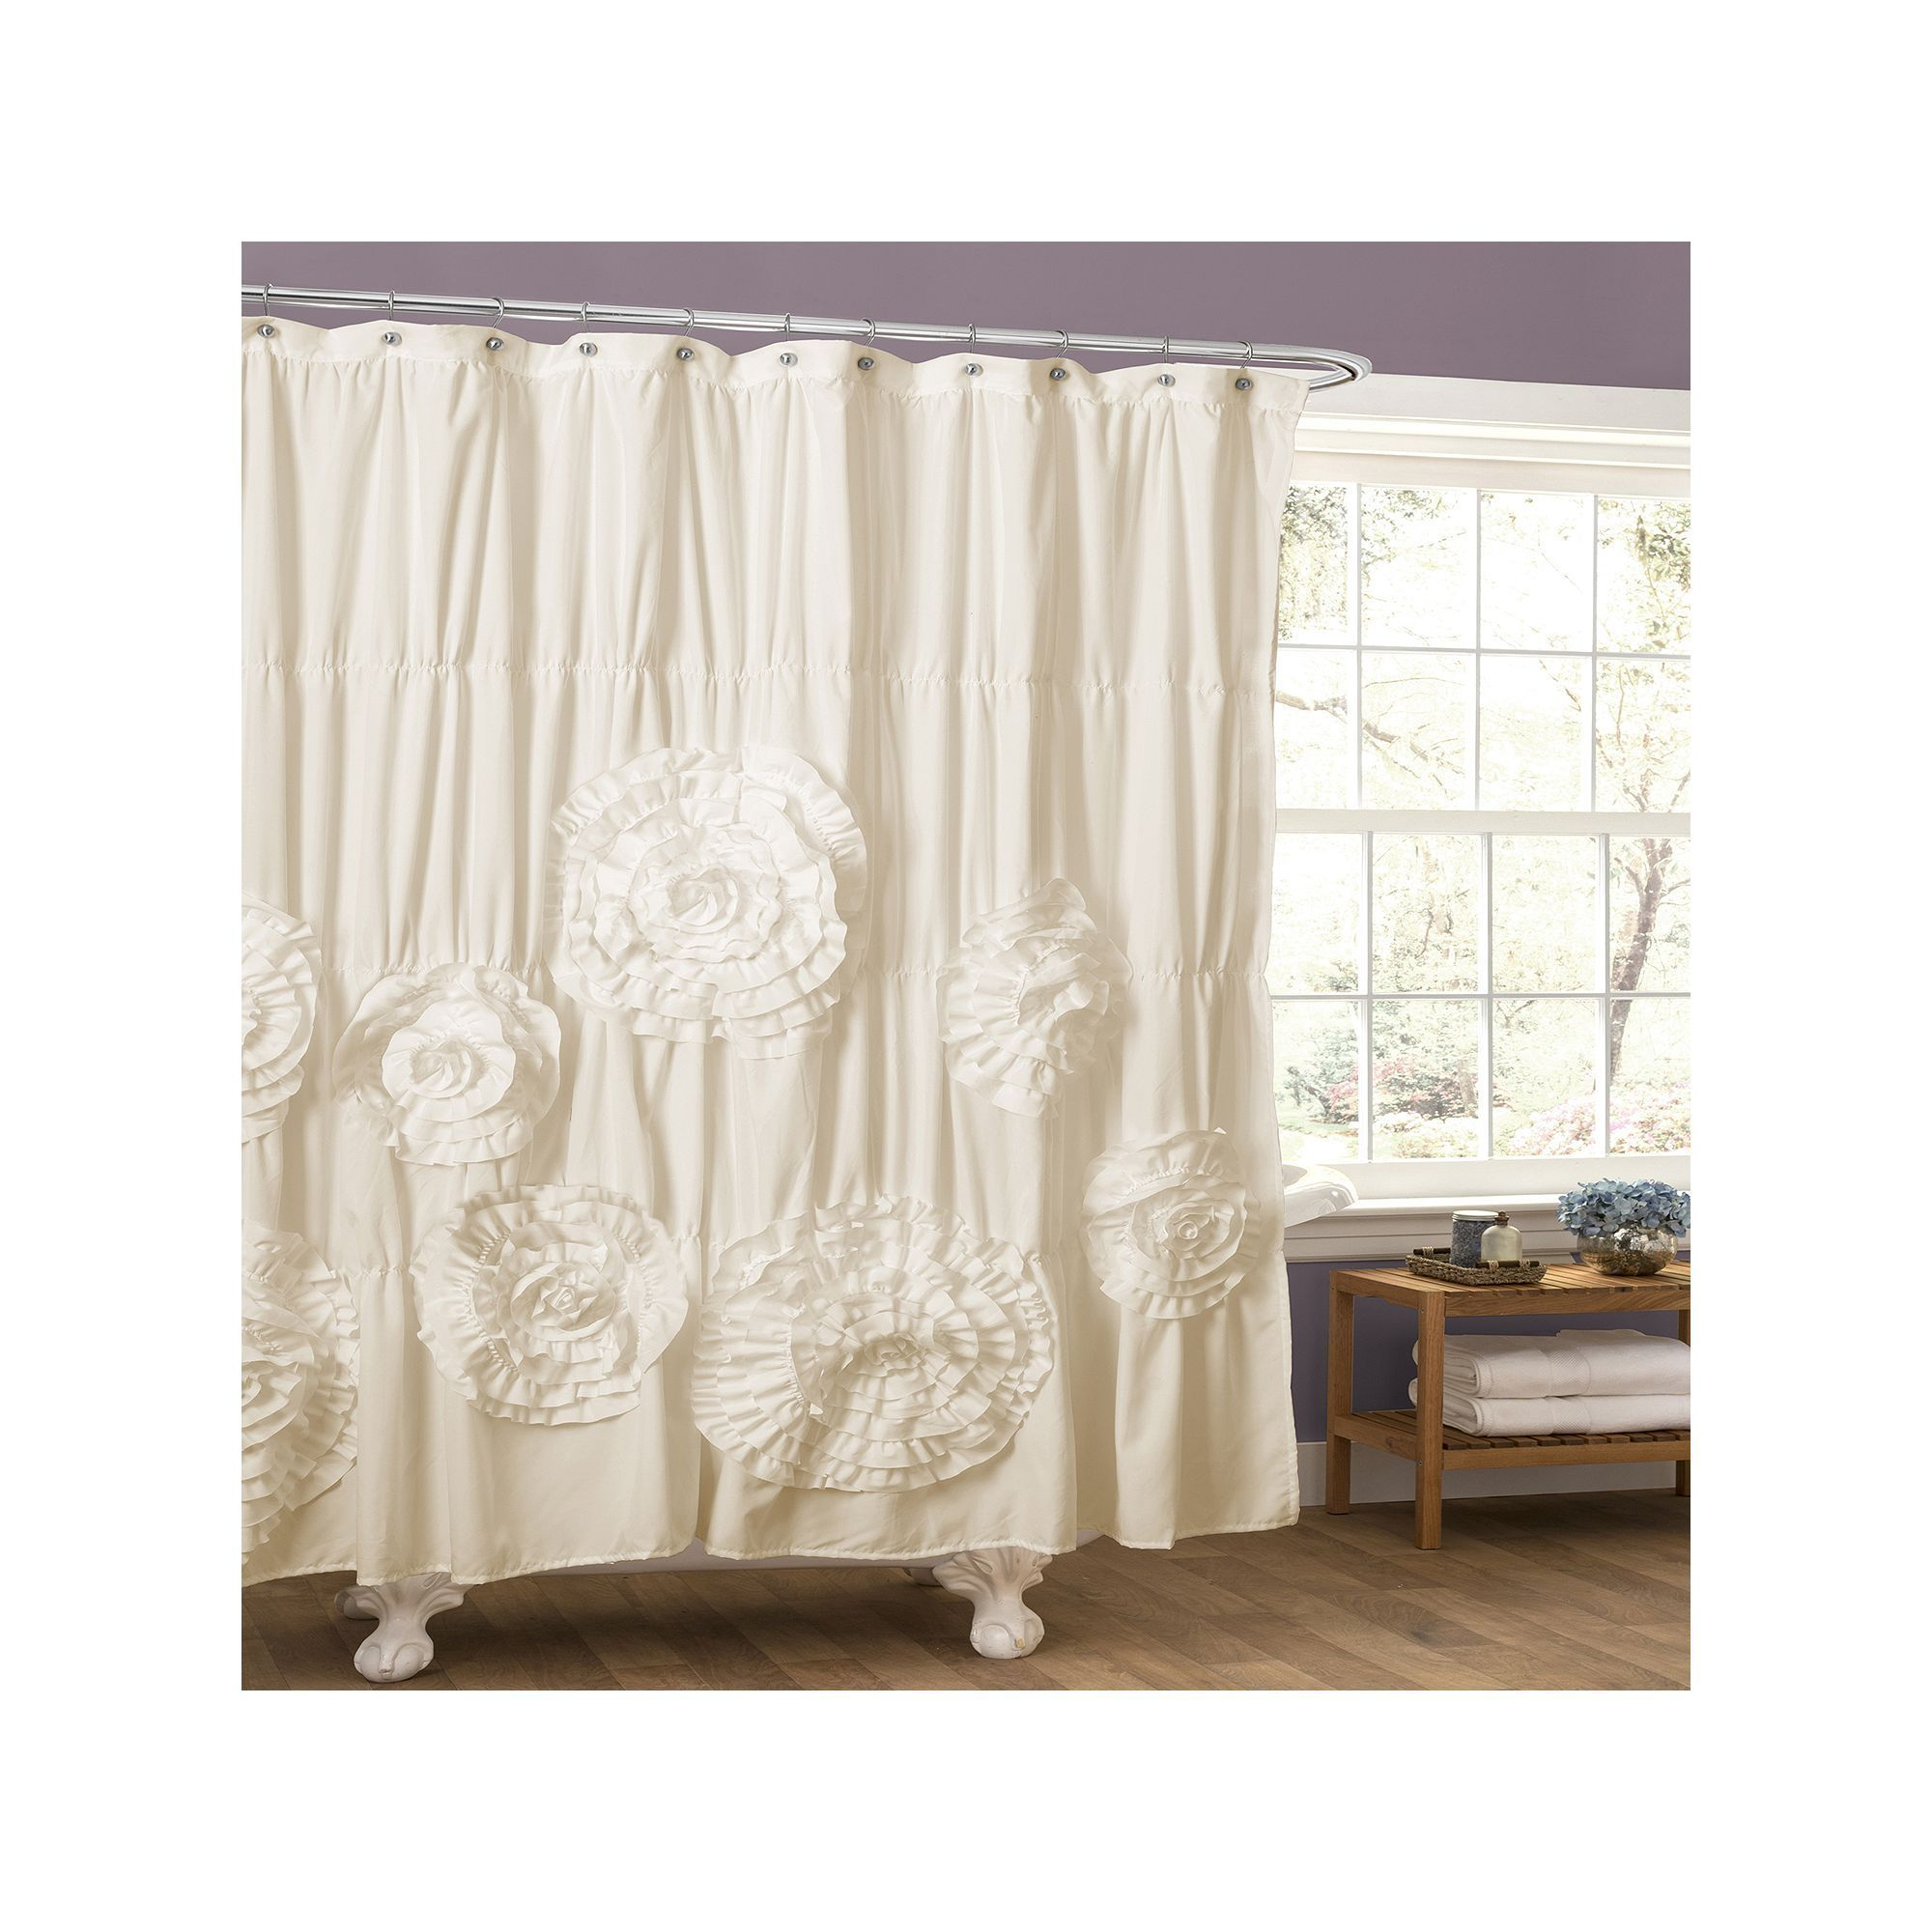 Lush Decor Serena Fabric Shower Curtain White White Shower Curtain Shabby Chic Bathroom Stylish Curtains